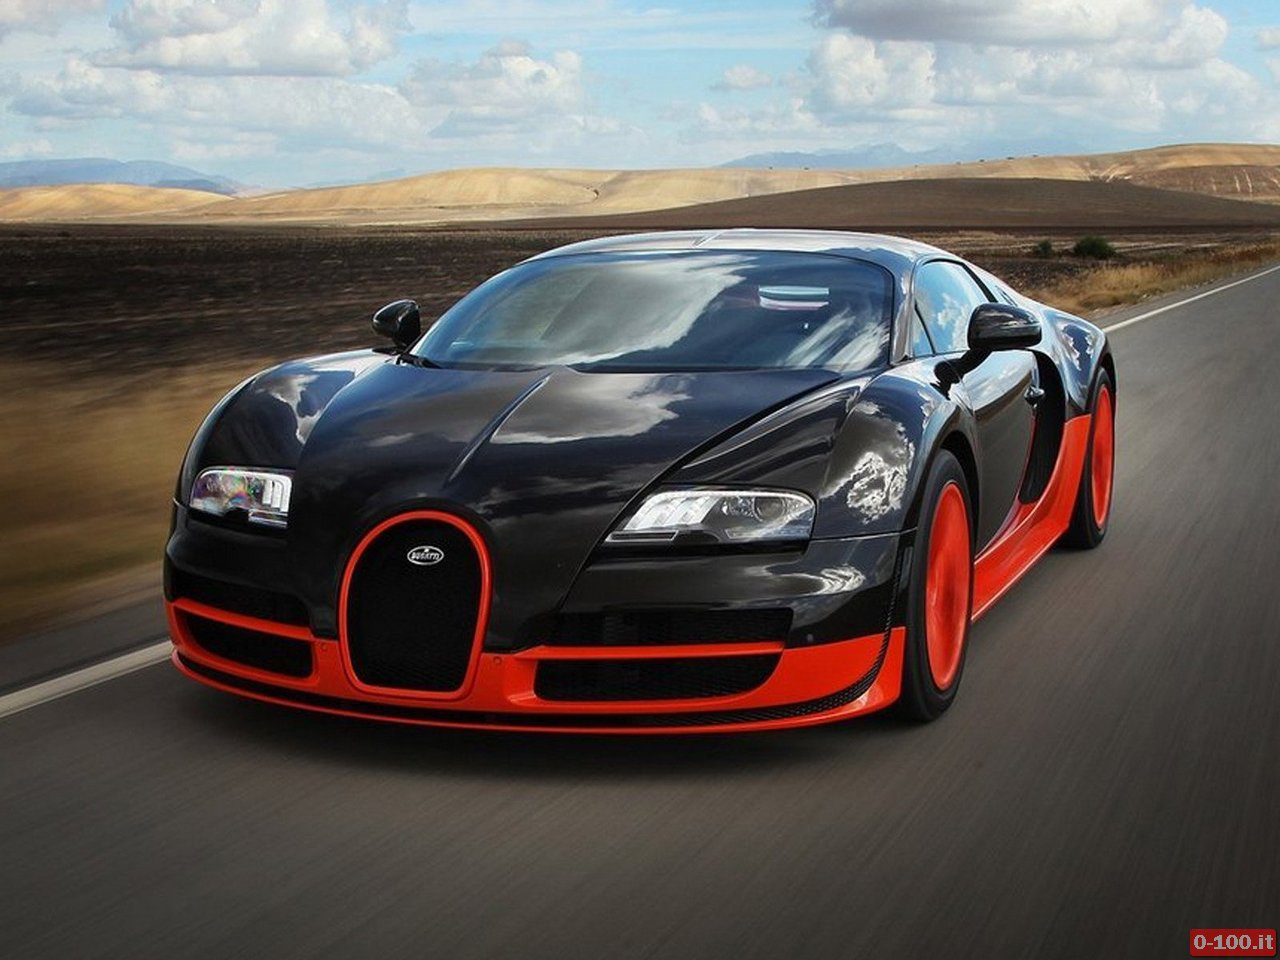 bugatti-veyron-supersport-guinness-world-records_0-100_6